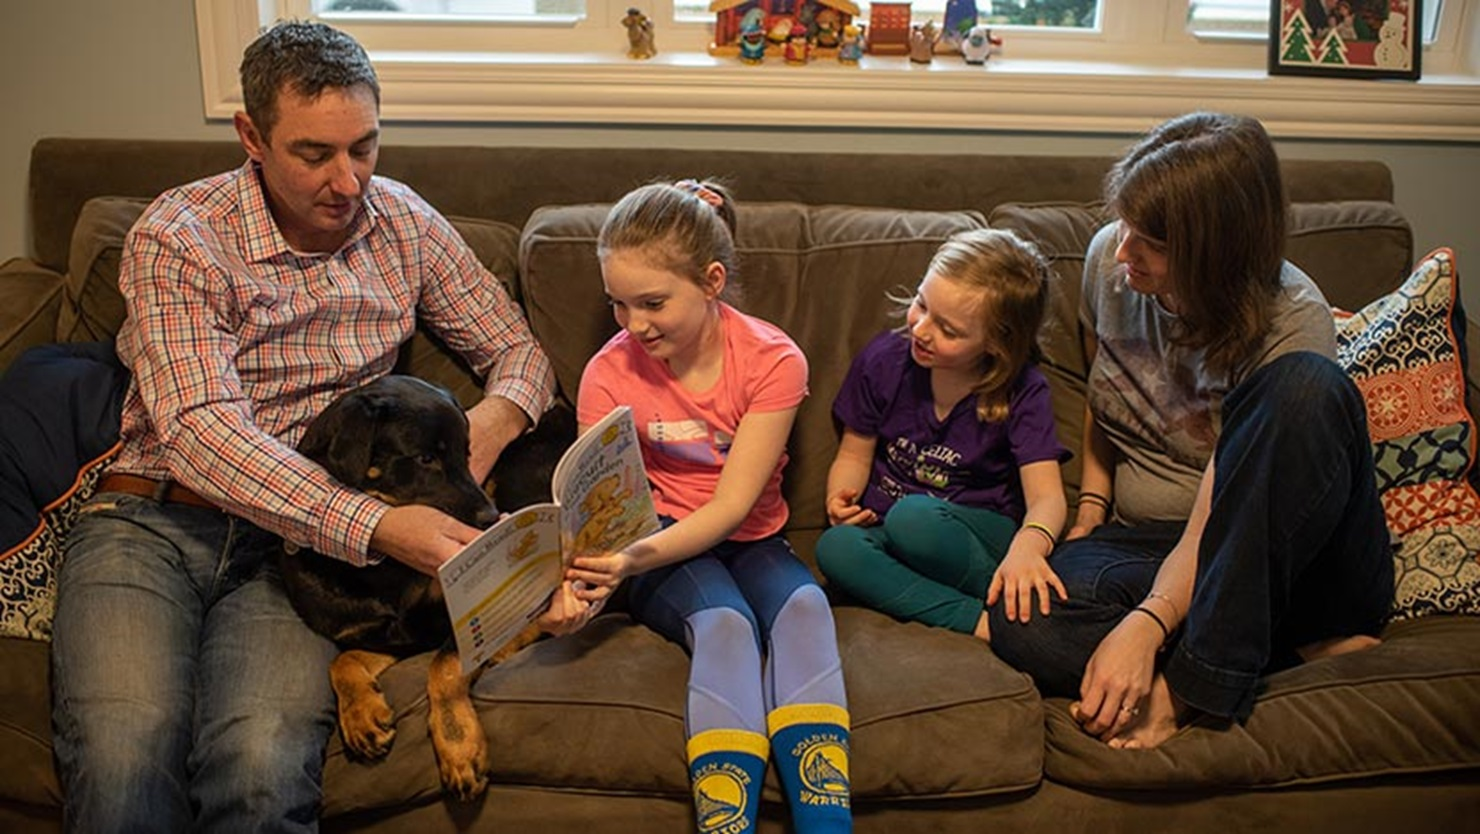 Celiac disease patient Niamh Bourke reading her favorite book with her family